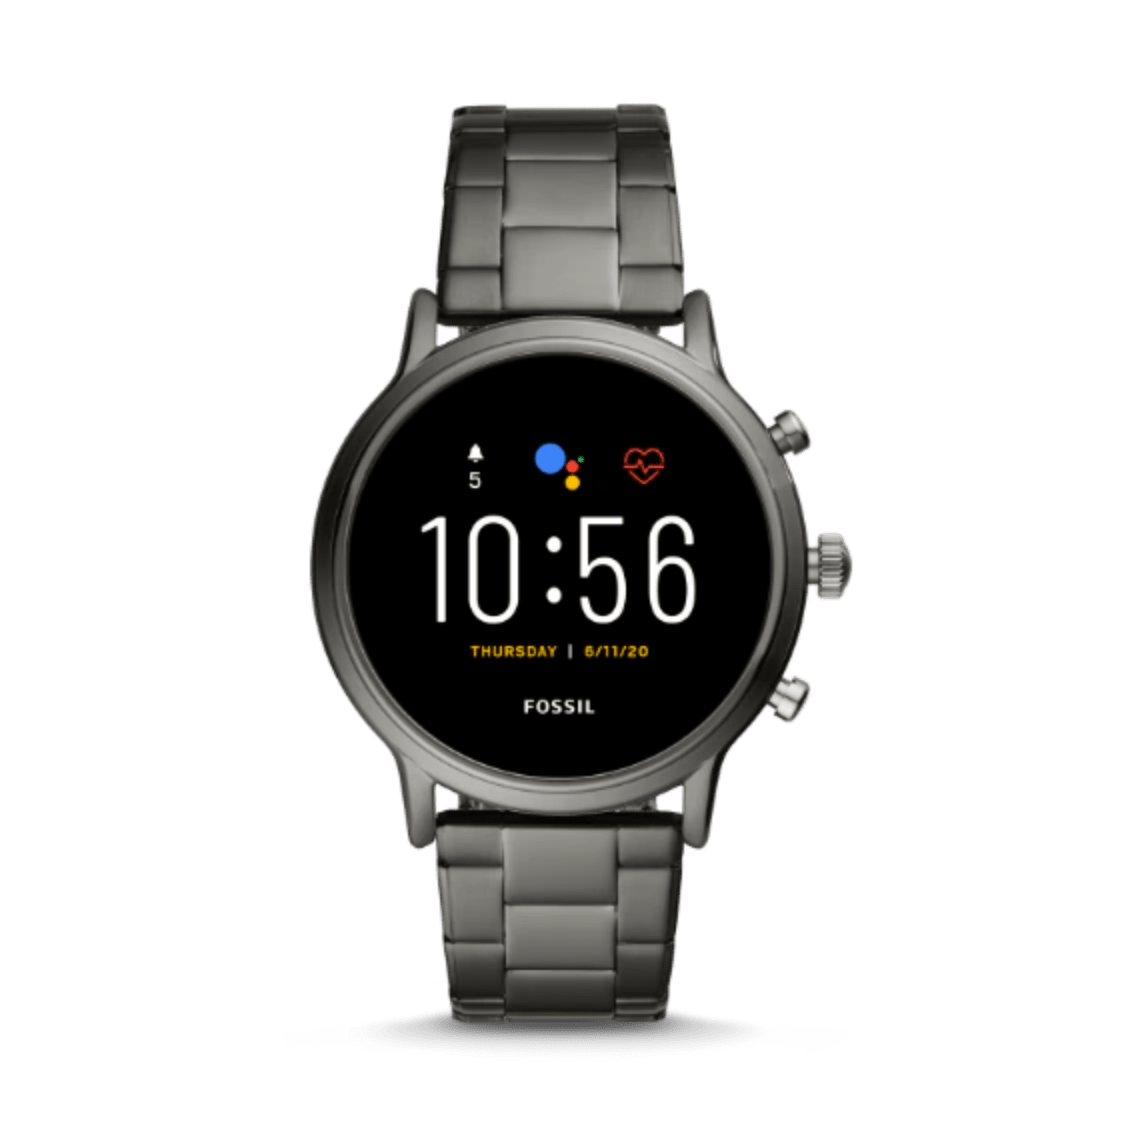 Men's smartwatches